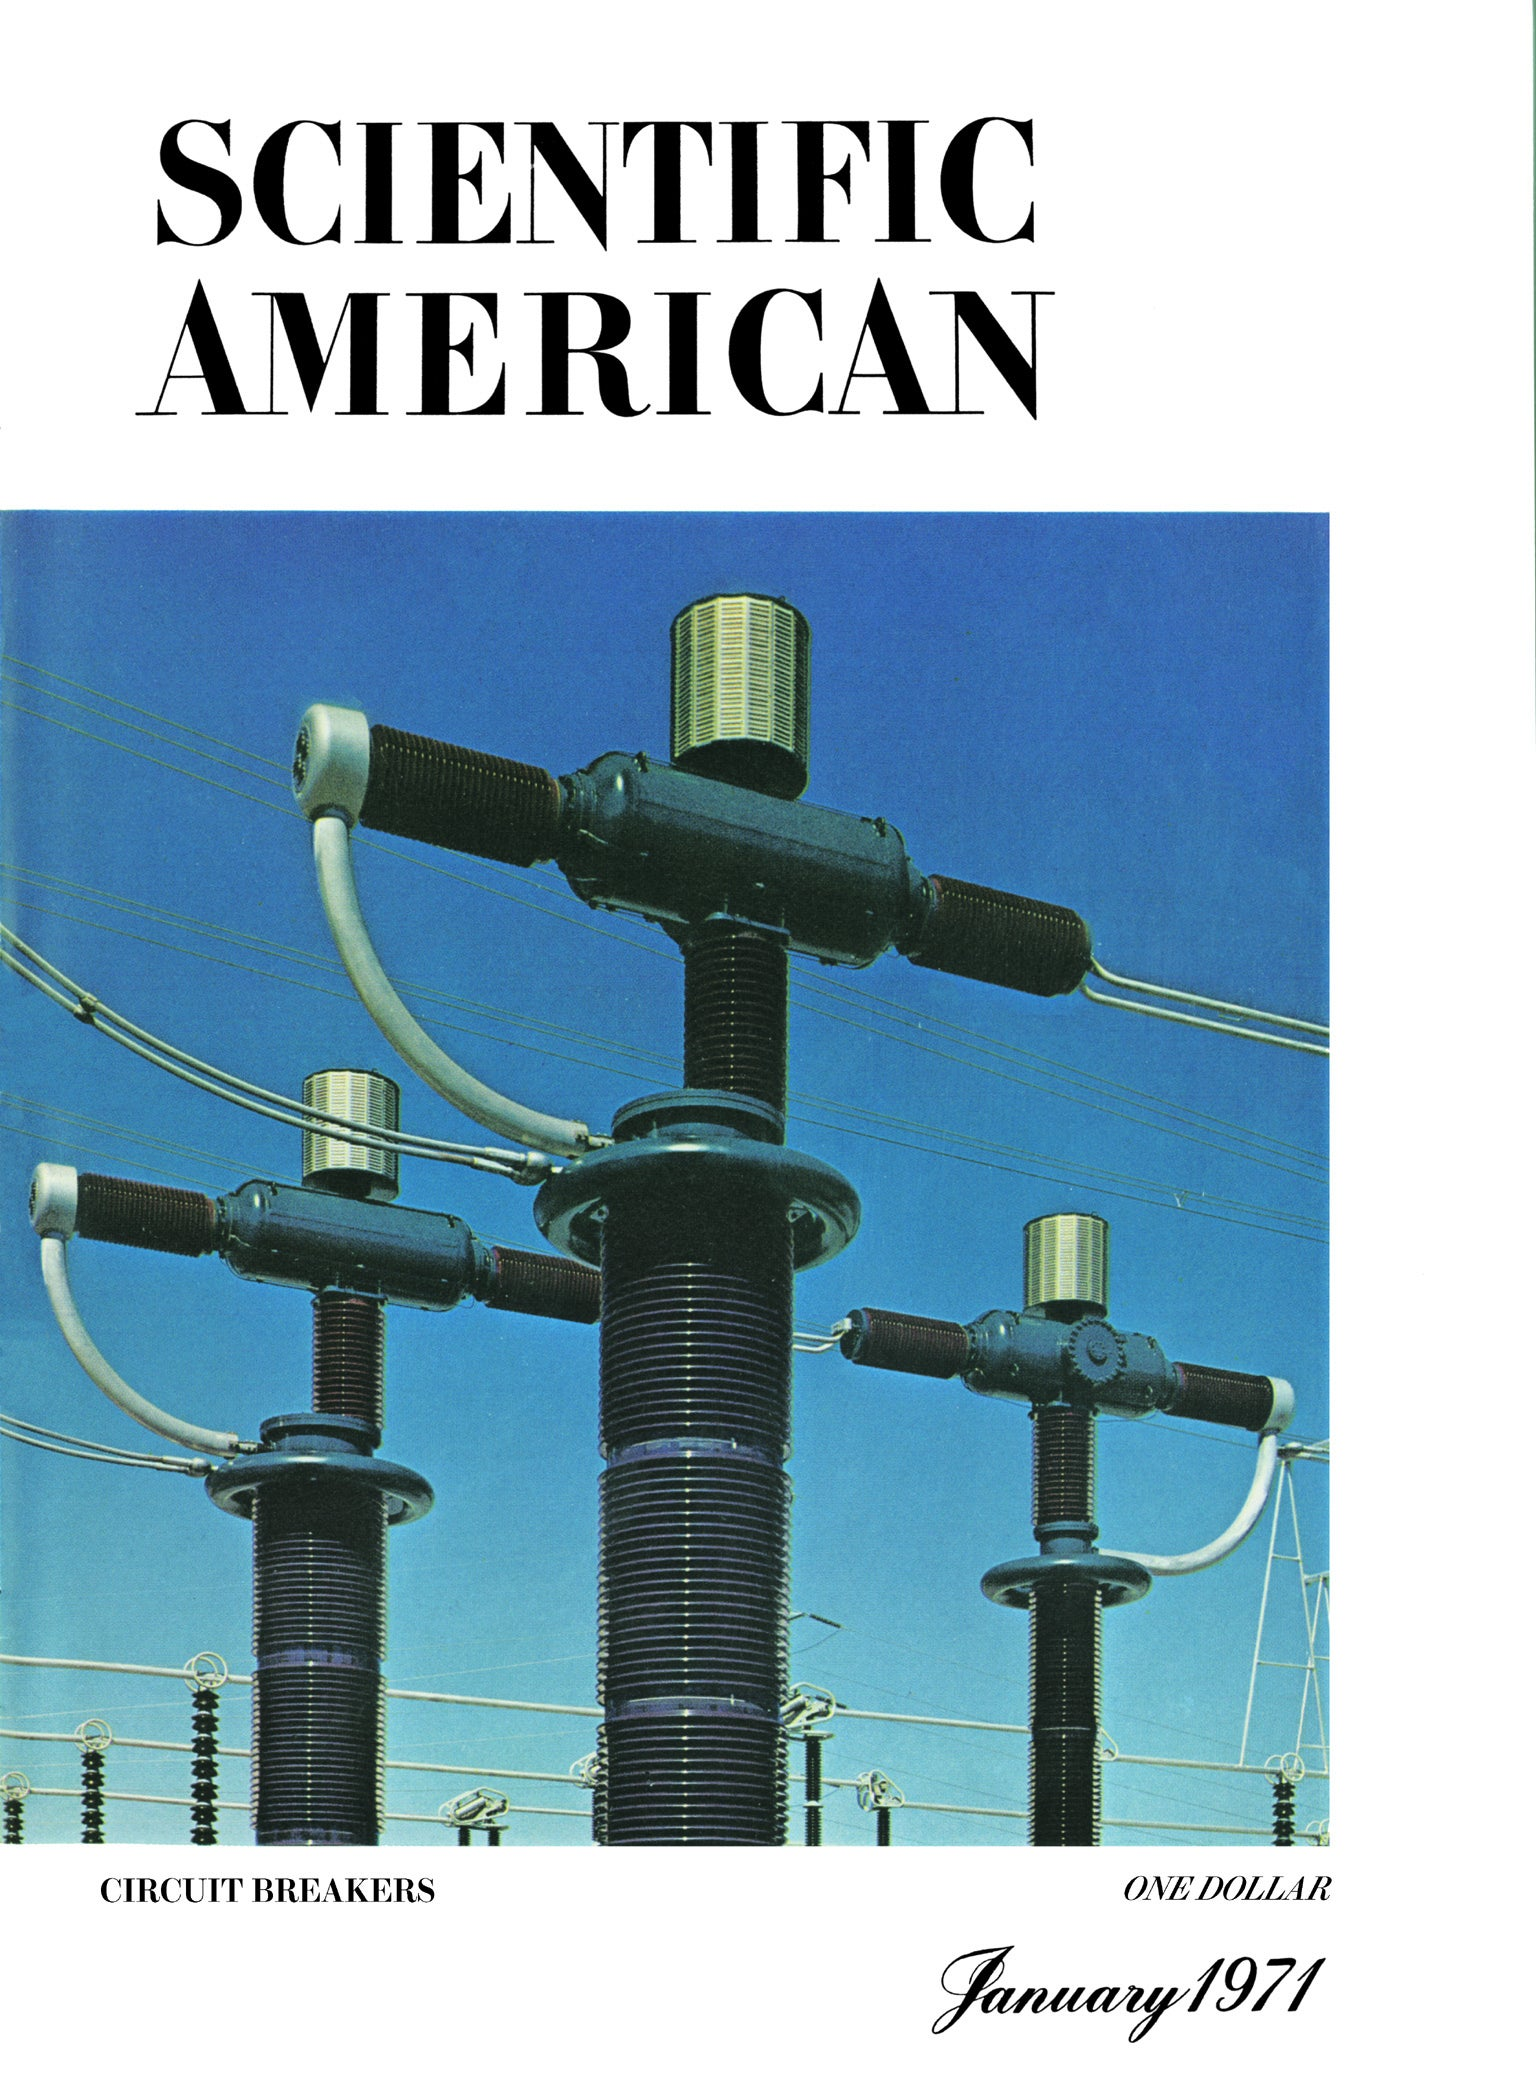 Cover of January, 1971 issue of Scientific American magazine